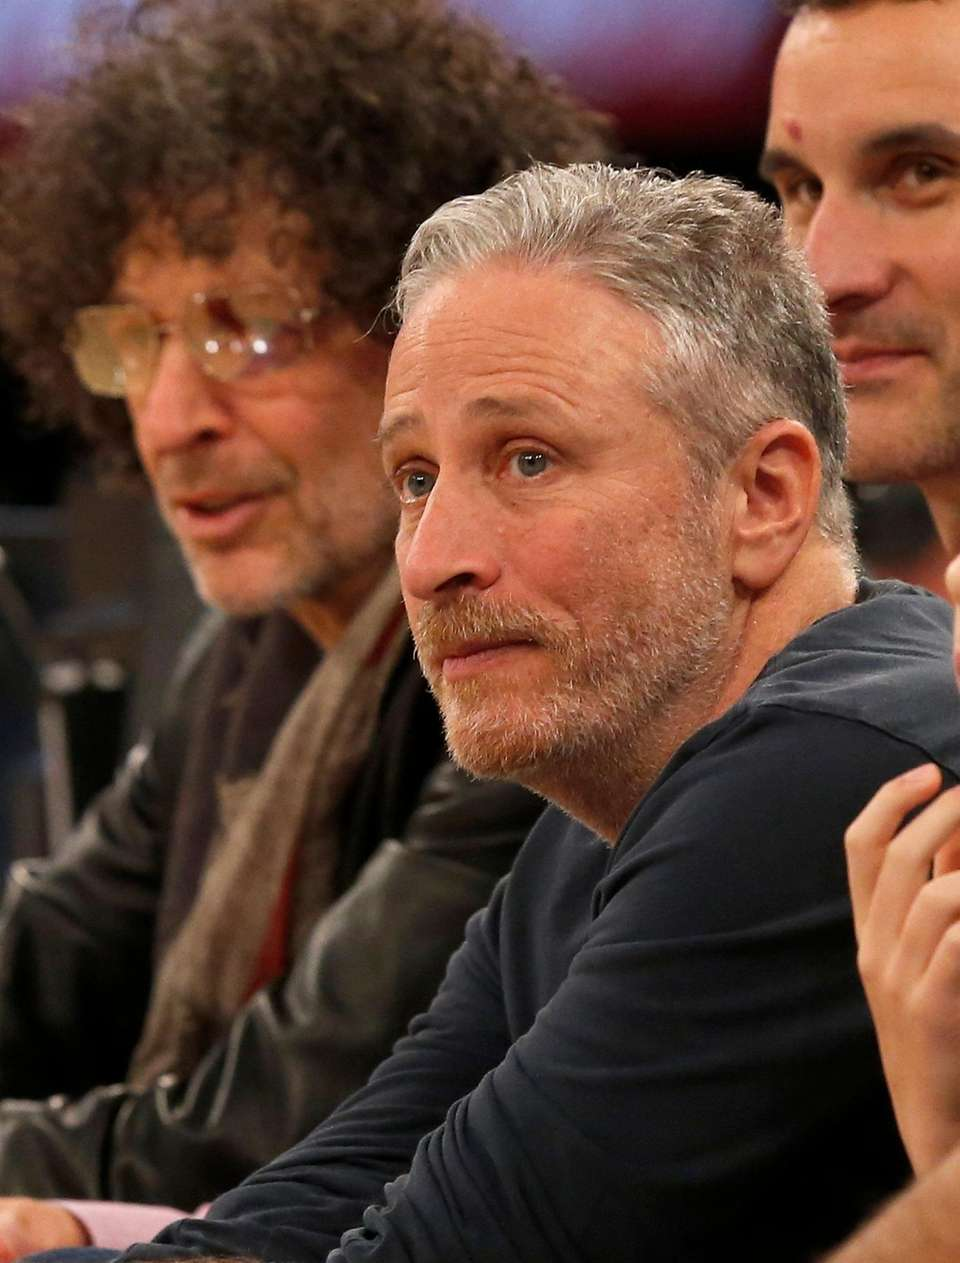 Television personality Jon Stewart attends a game between